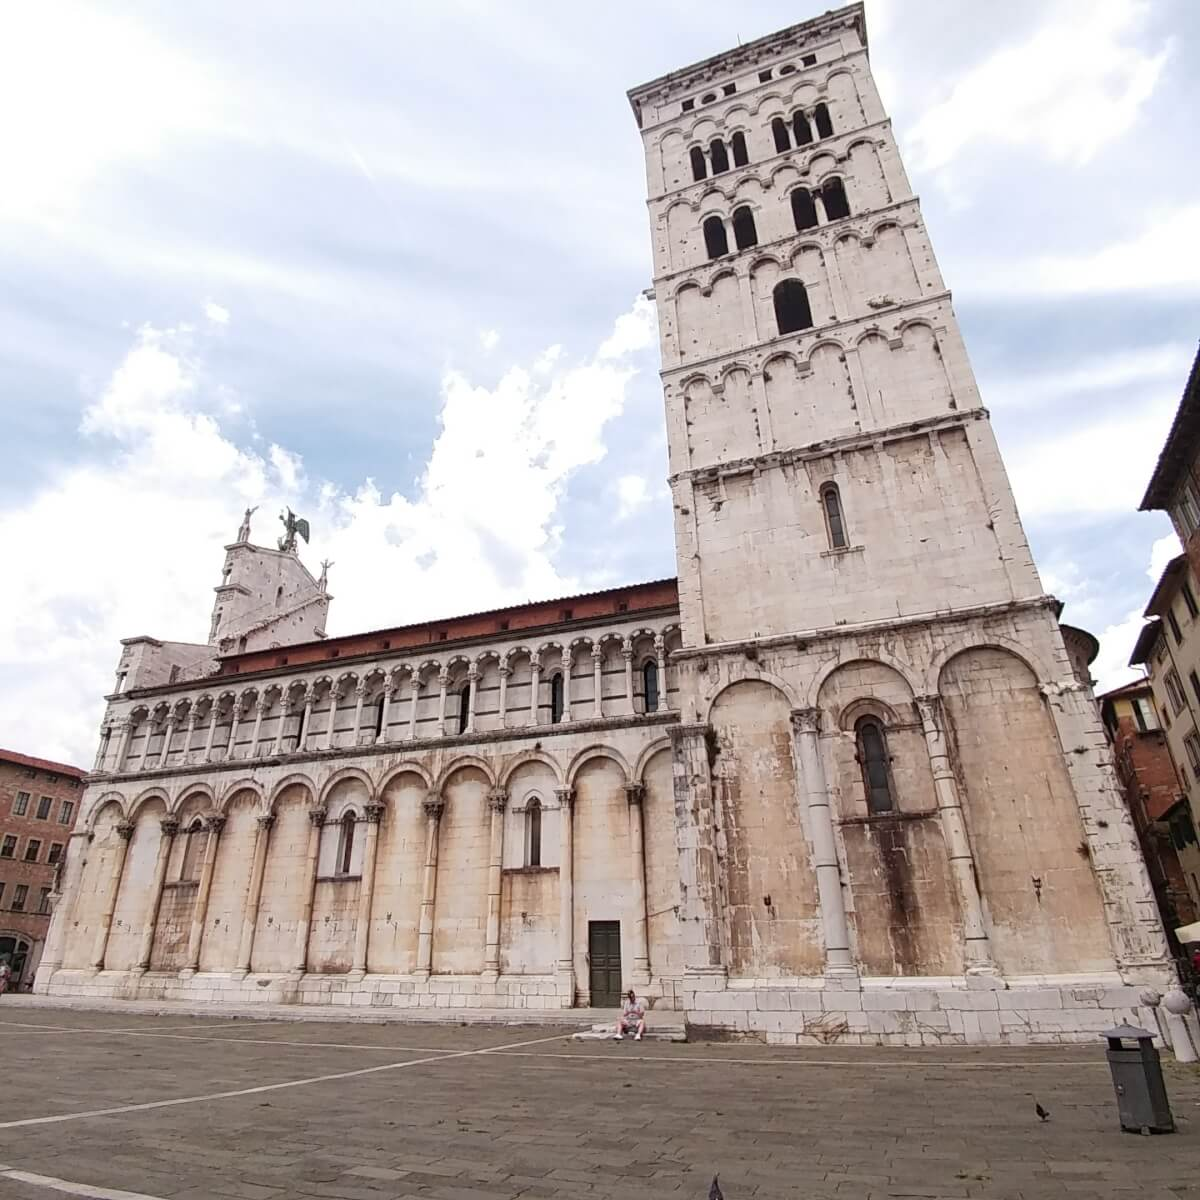 Piazza San Michele in Foro